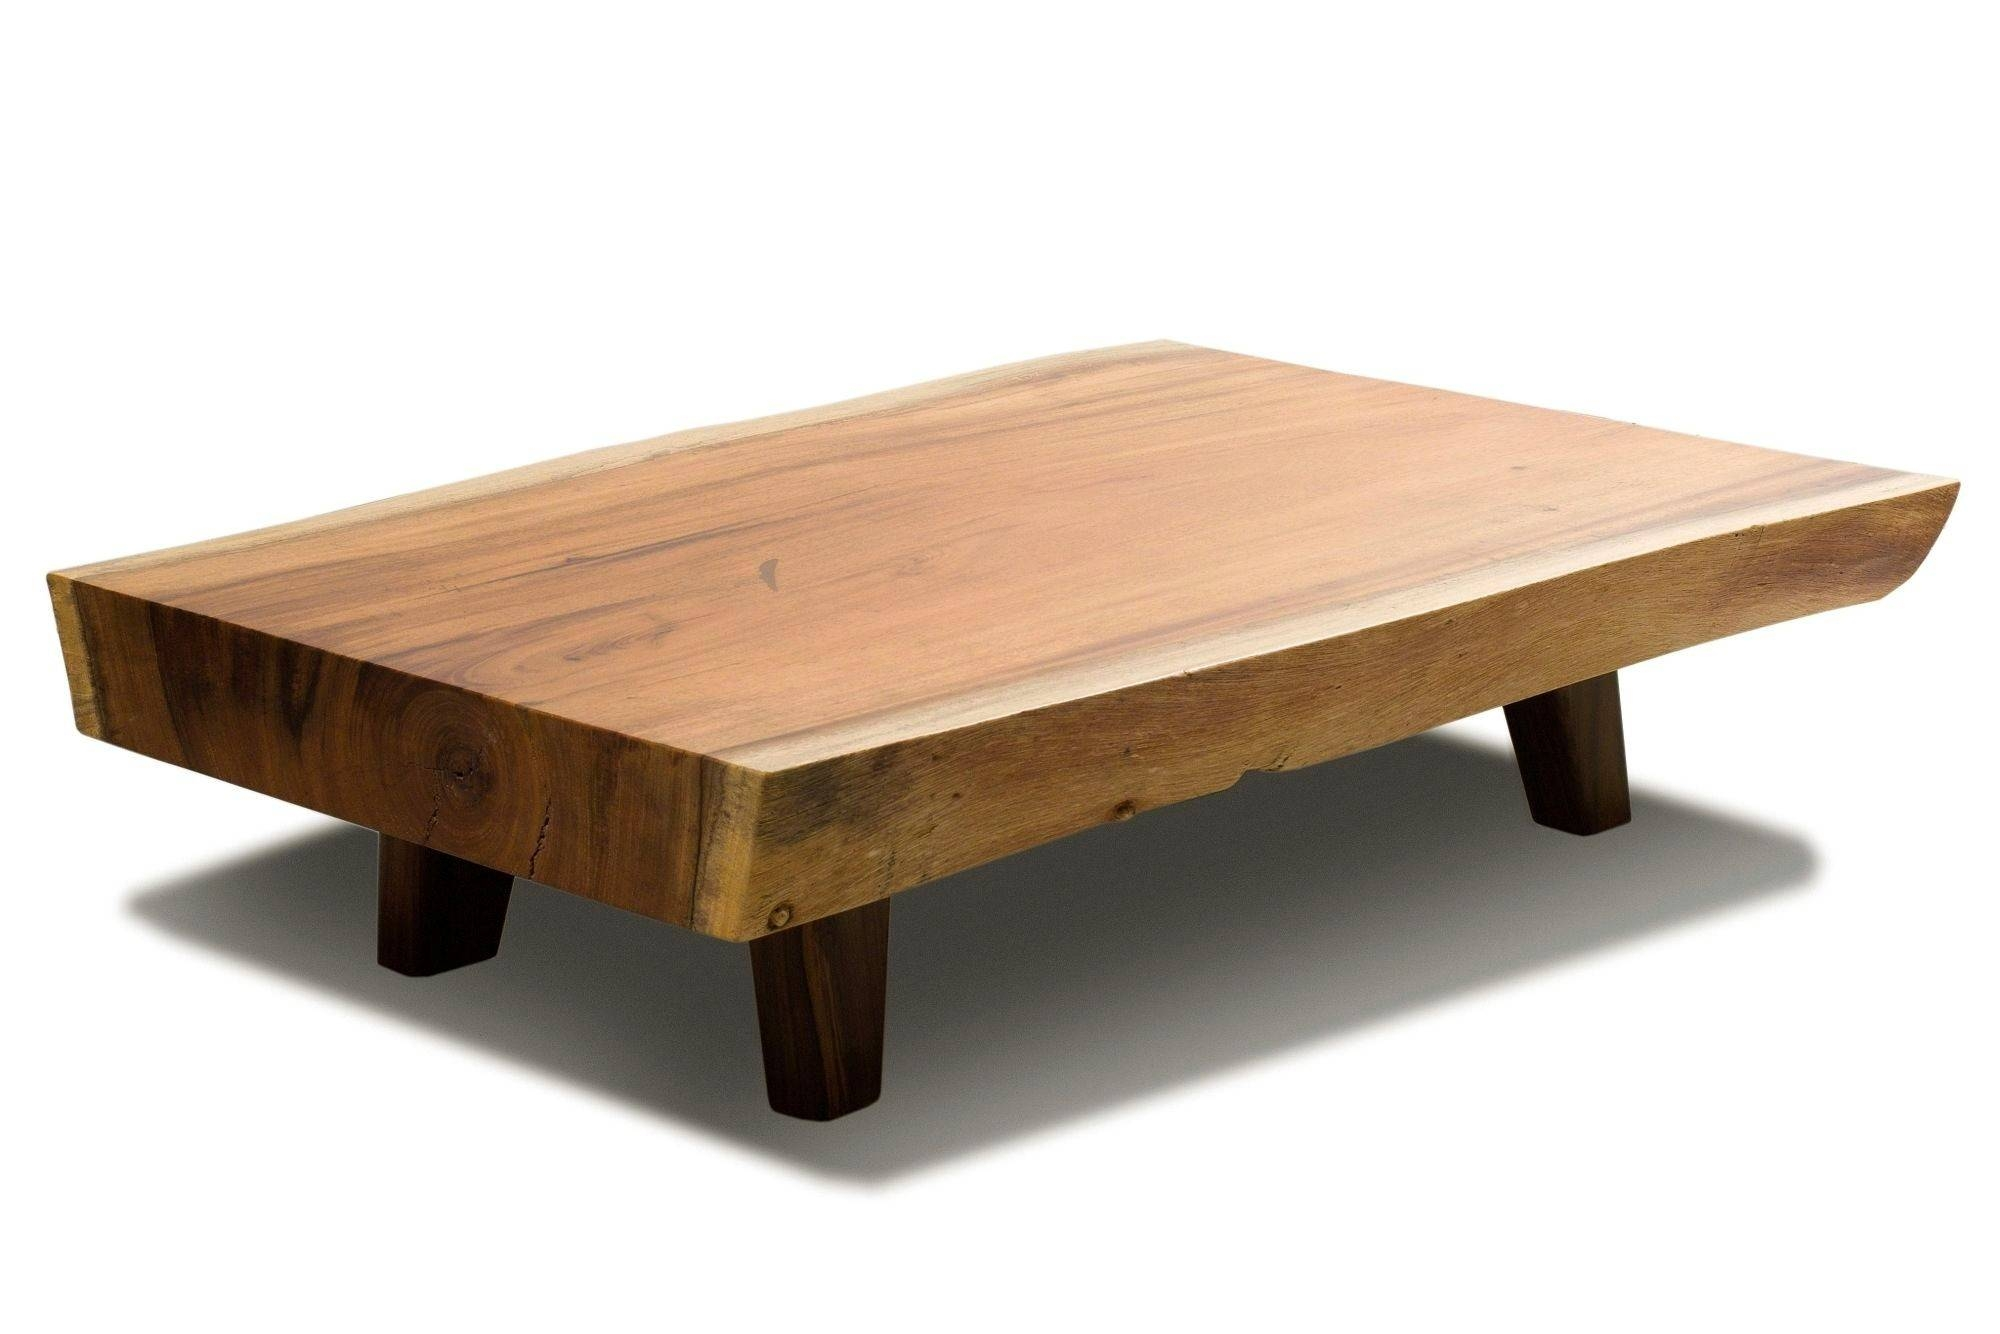 Coffee Table: Raw Wood Coffee Table Design Ideas Raw Edge Wood Within Large Low Wood Coffee Tables (View 13 of 30)